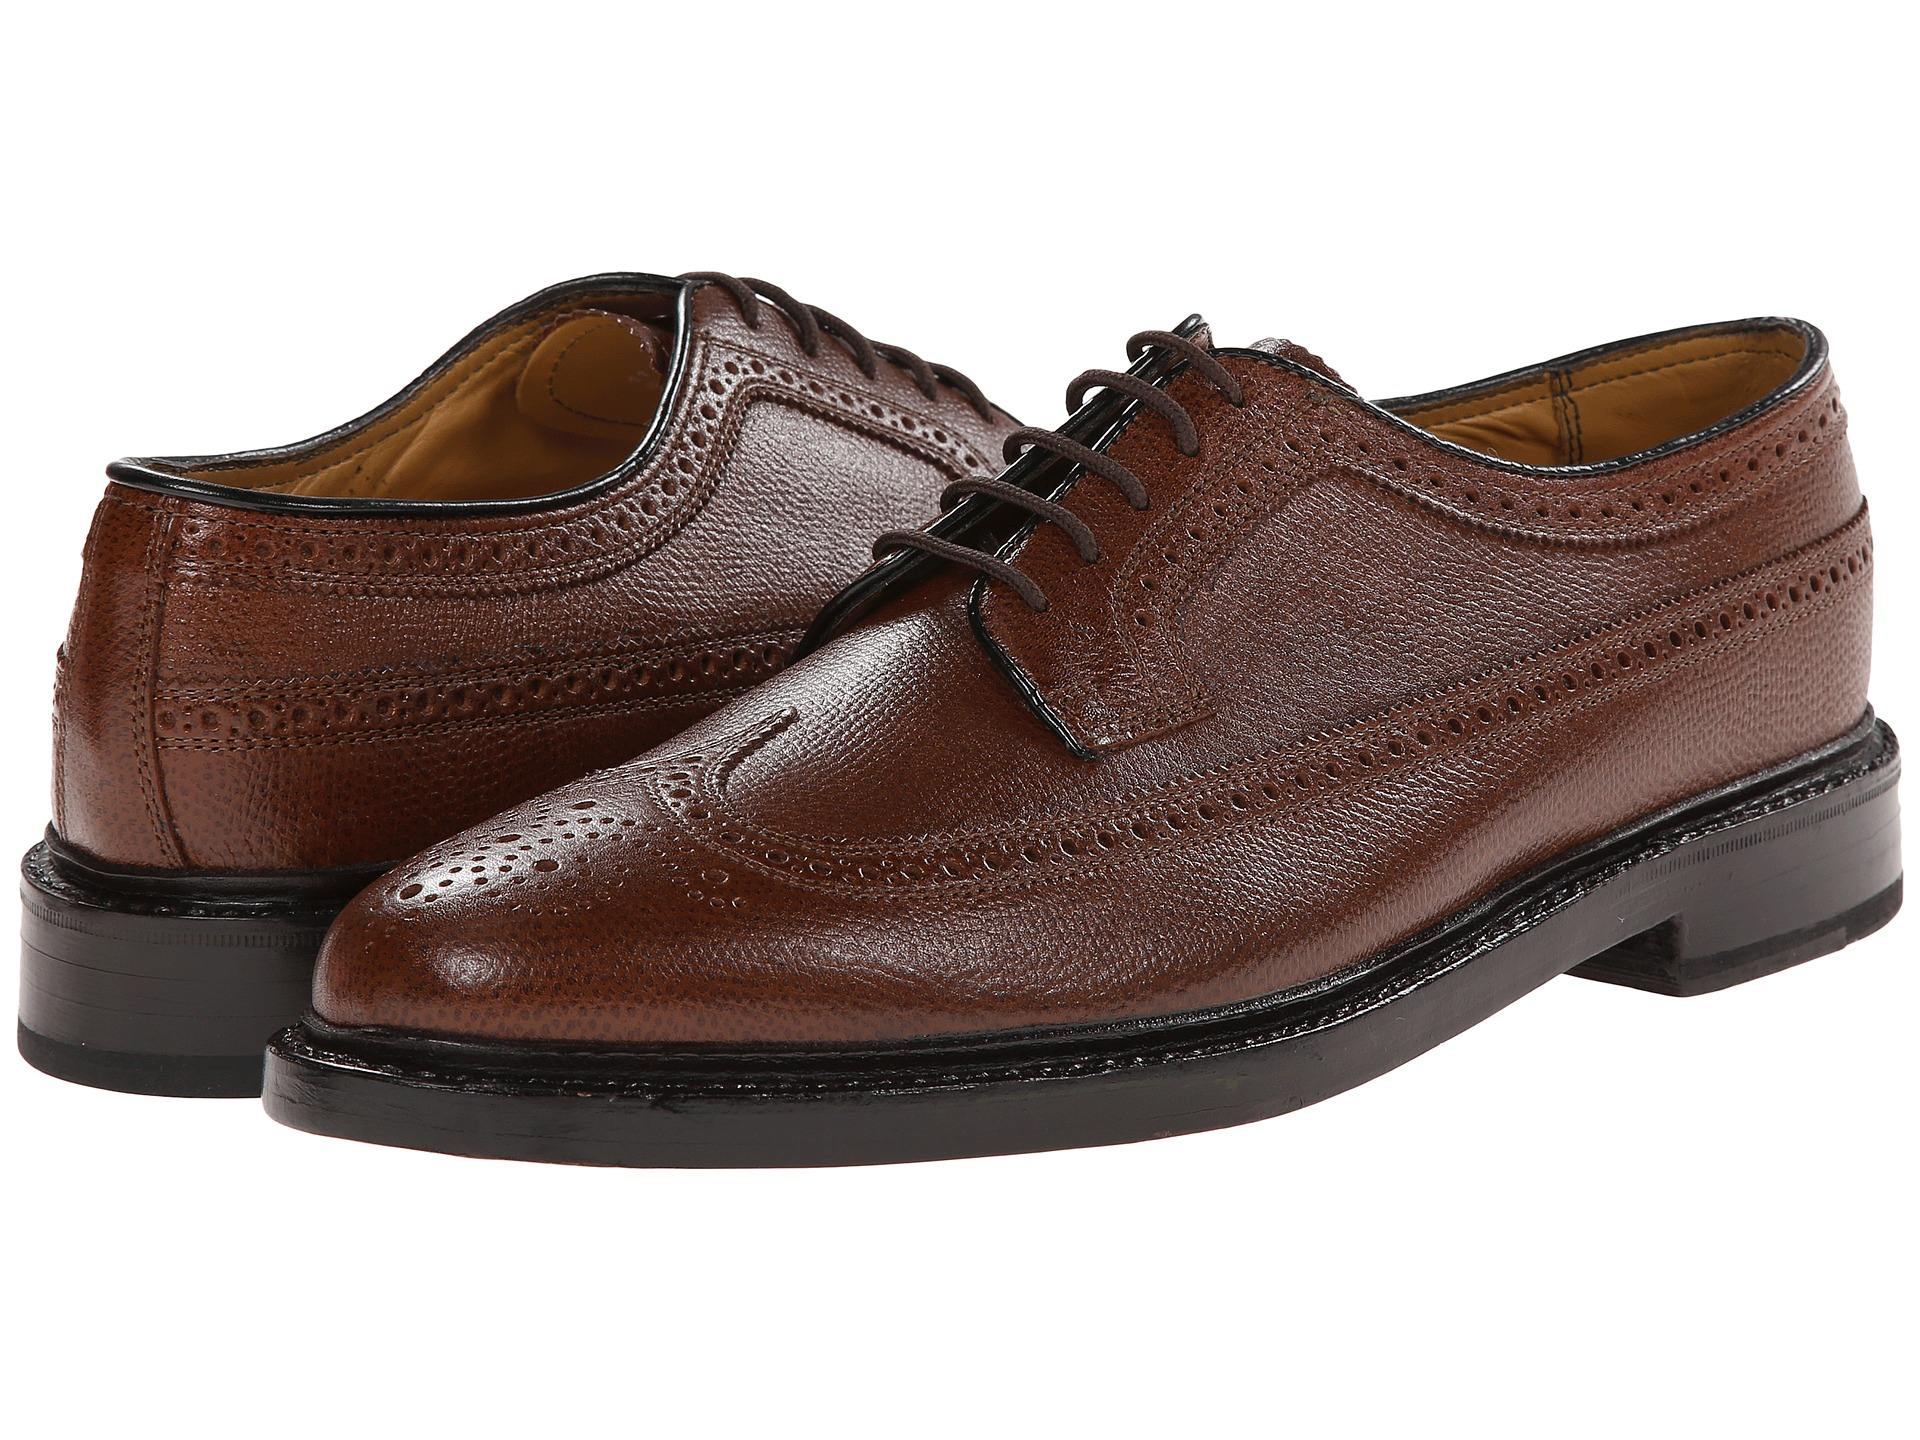 In , Milton Florsheim began producing shoes in a small factory located in Chicago, Illinois. The first pairs of Florsheim shoes were made by Milton and his father, Sigmund.